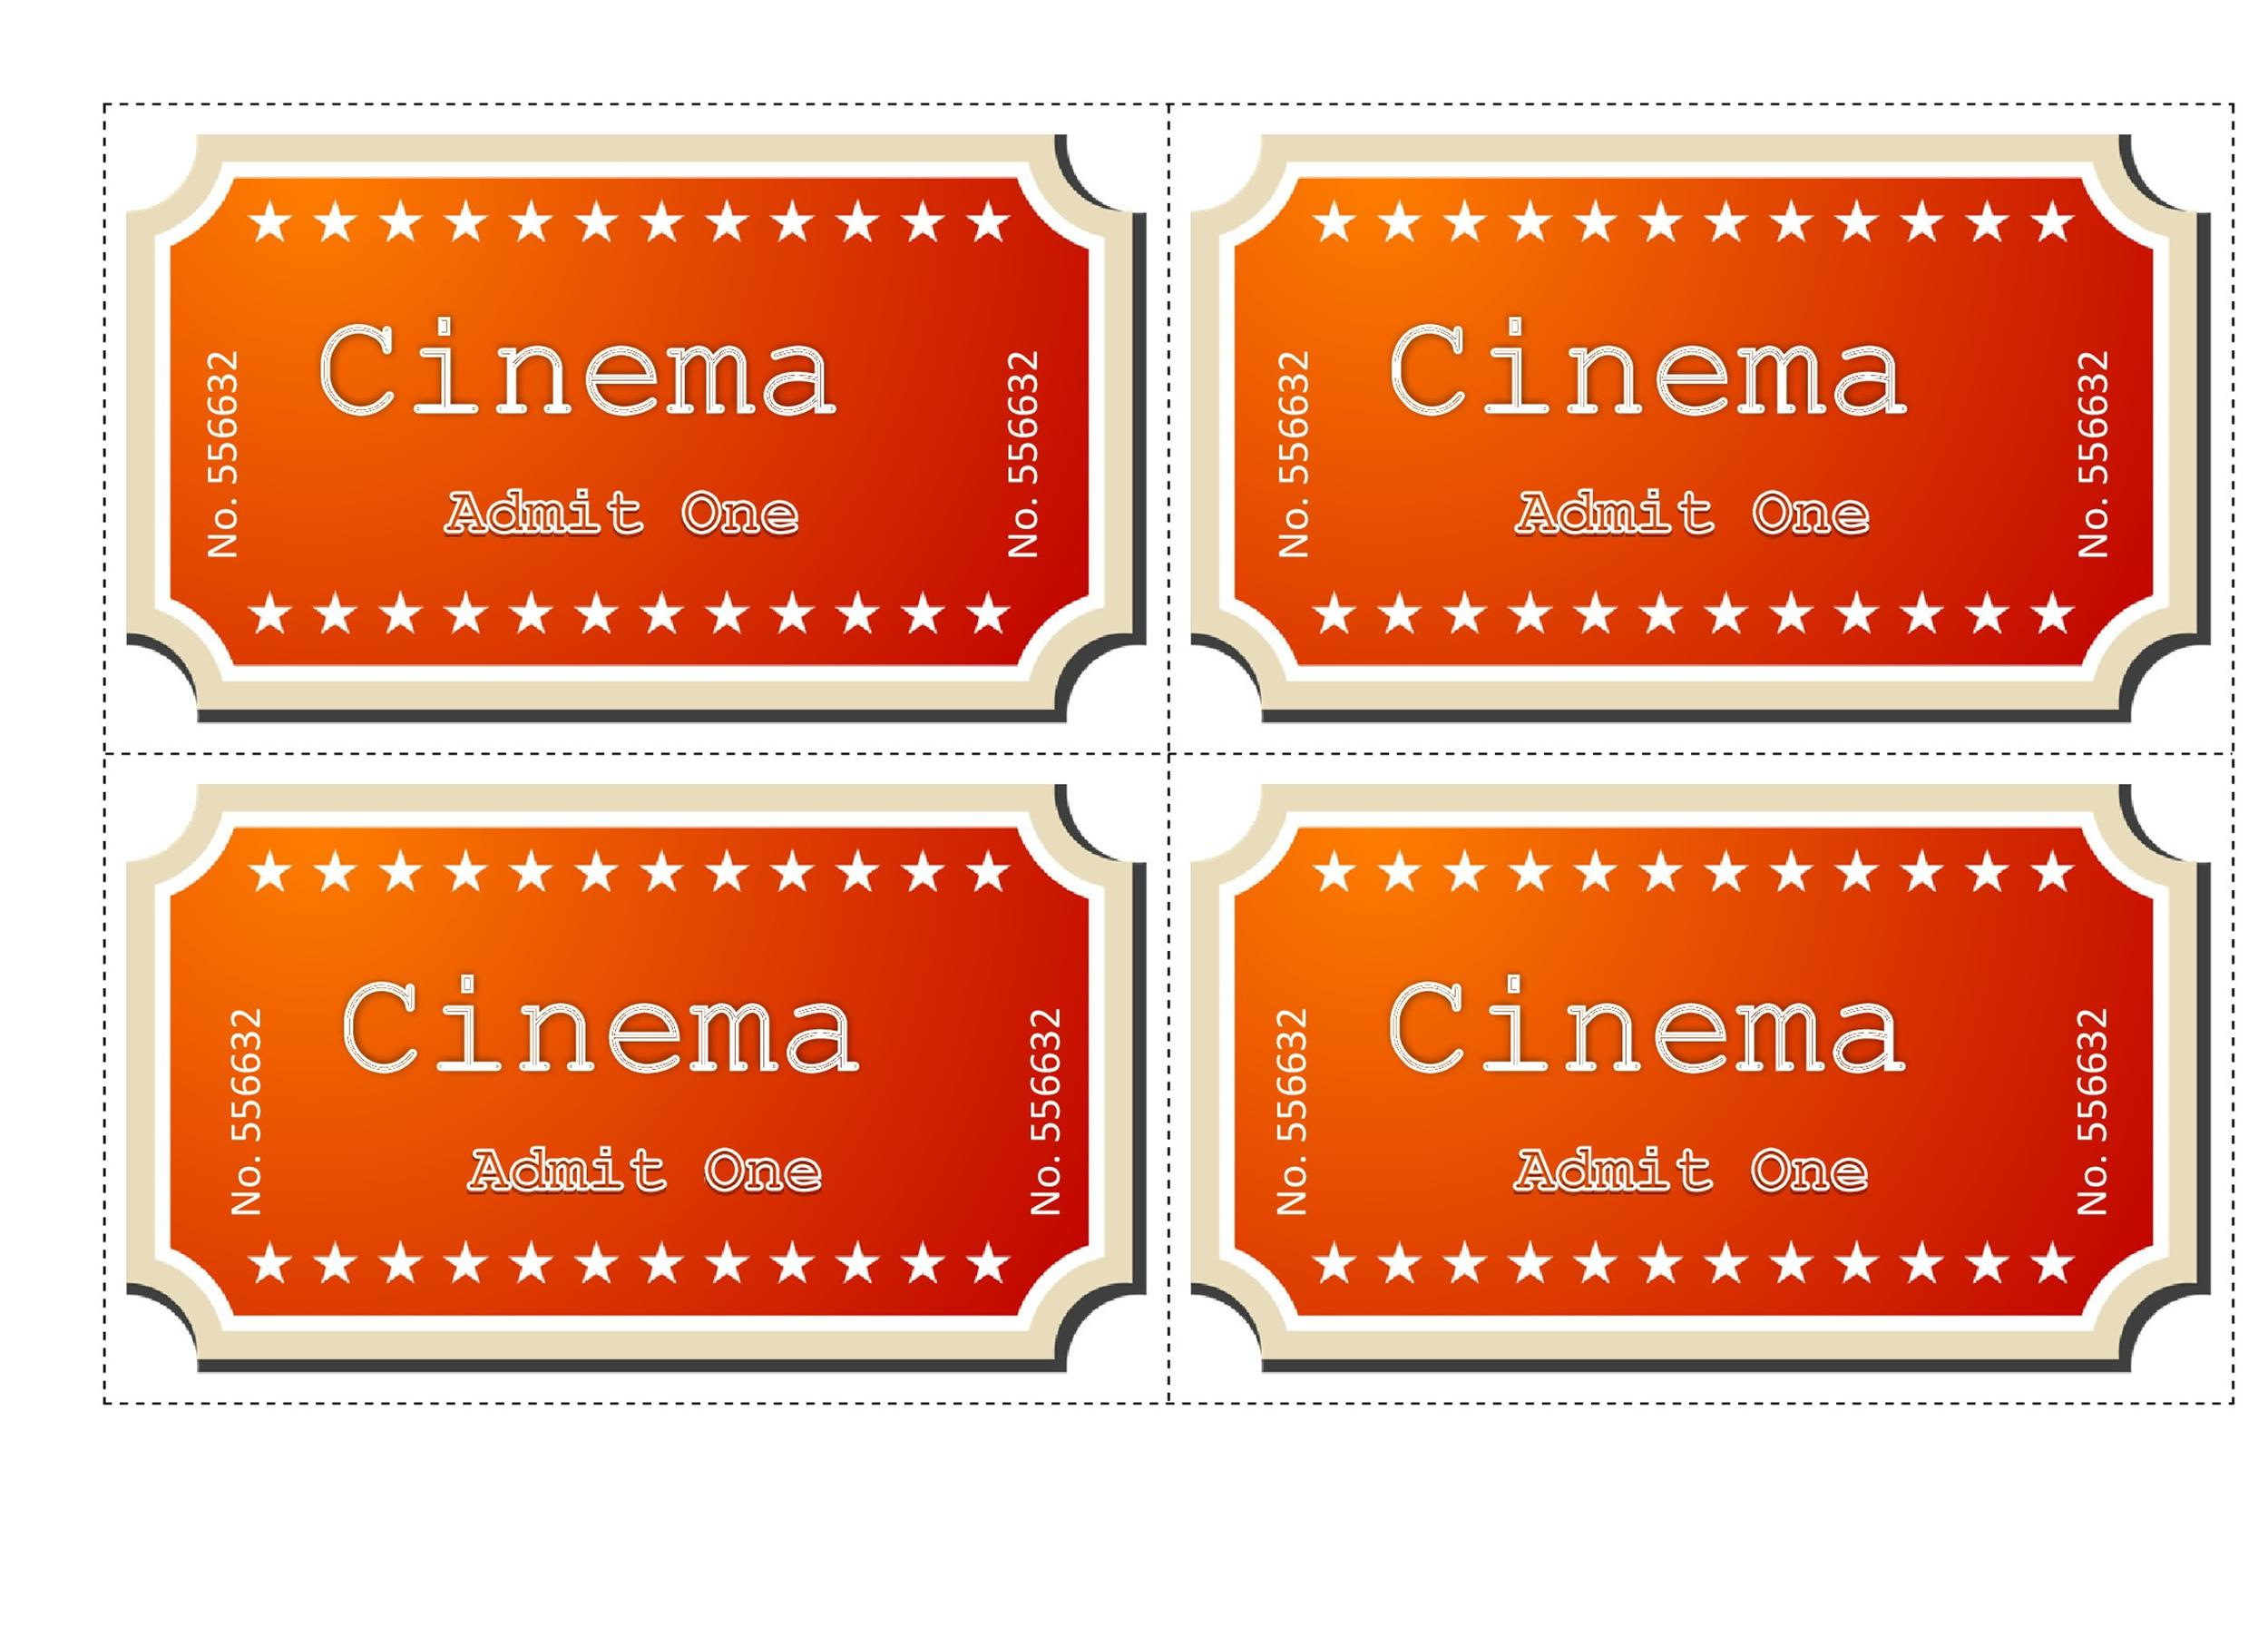 movie ticket template for word - Yelommyphonecompany